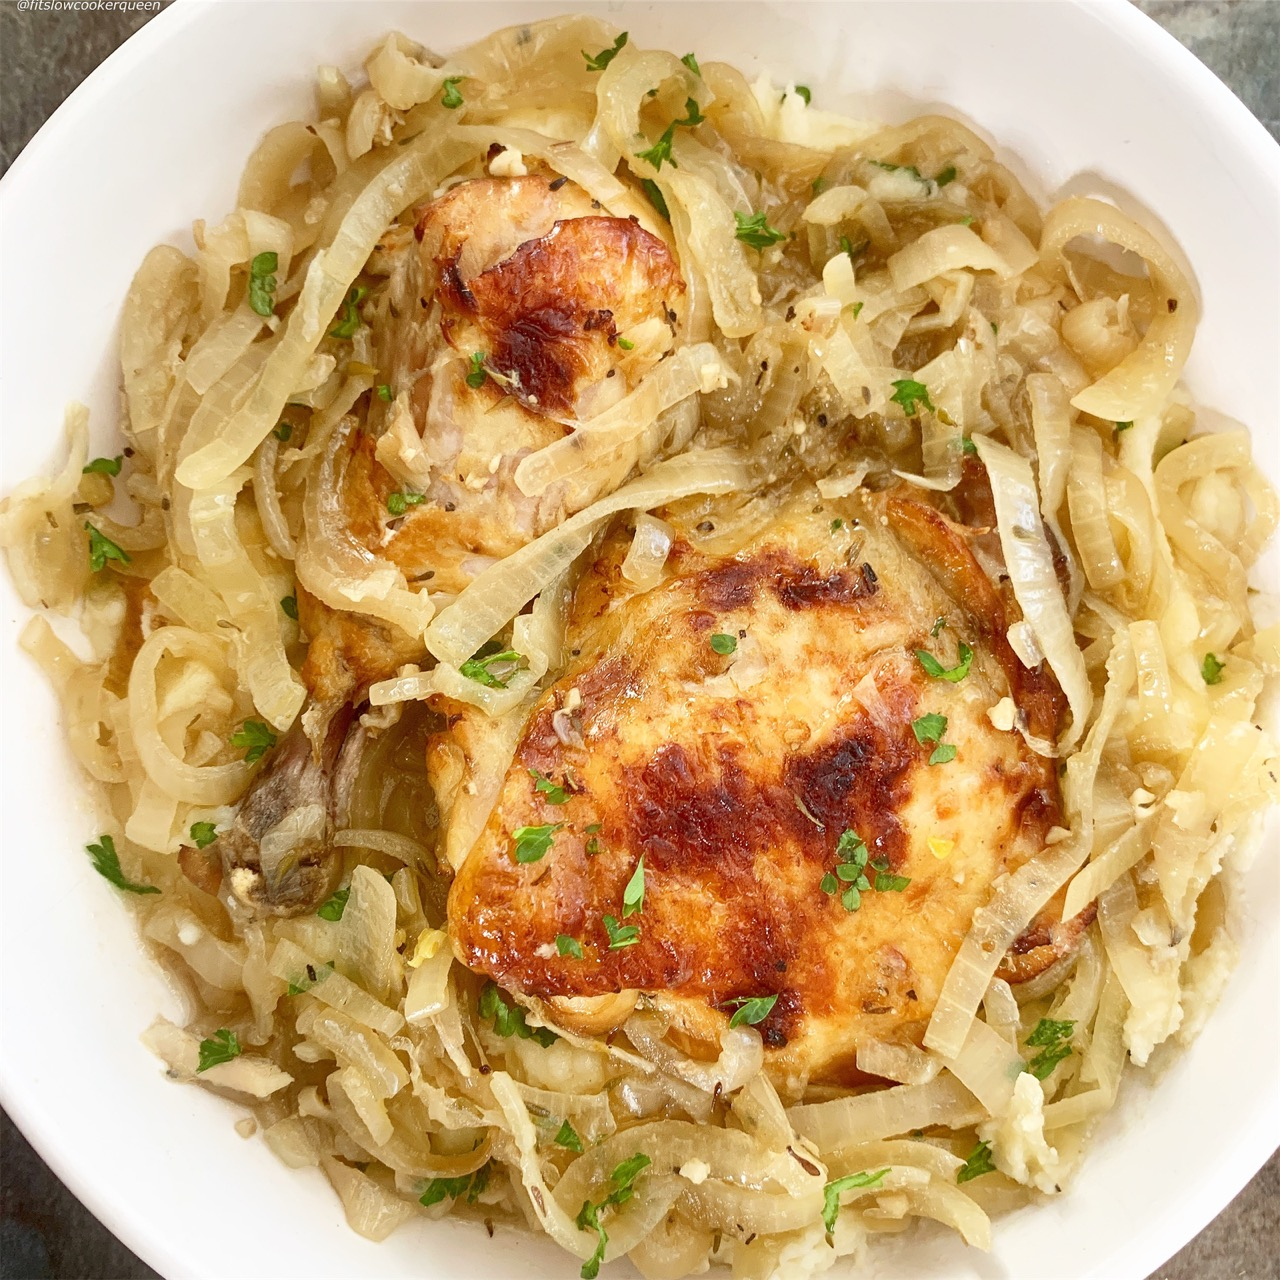 French onion chicken French onion soup flavors but without the cheese to make this recipe low-carb, paleo and whole30 compliant. Make this meal in your slow cooker or Instant Pot.